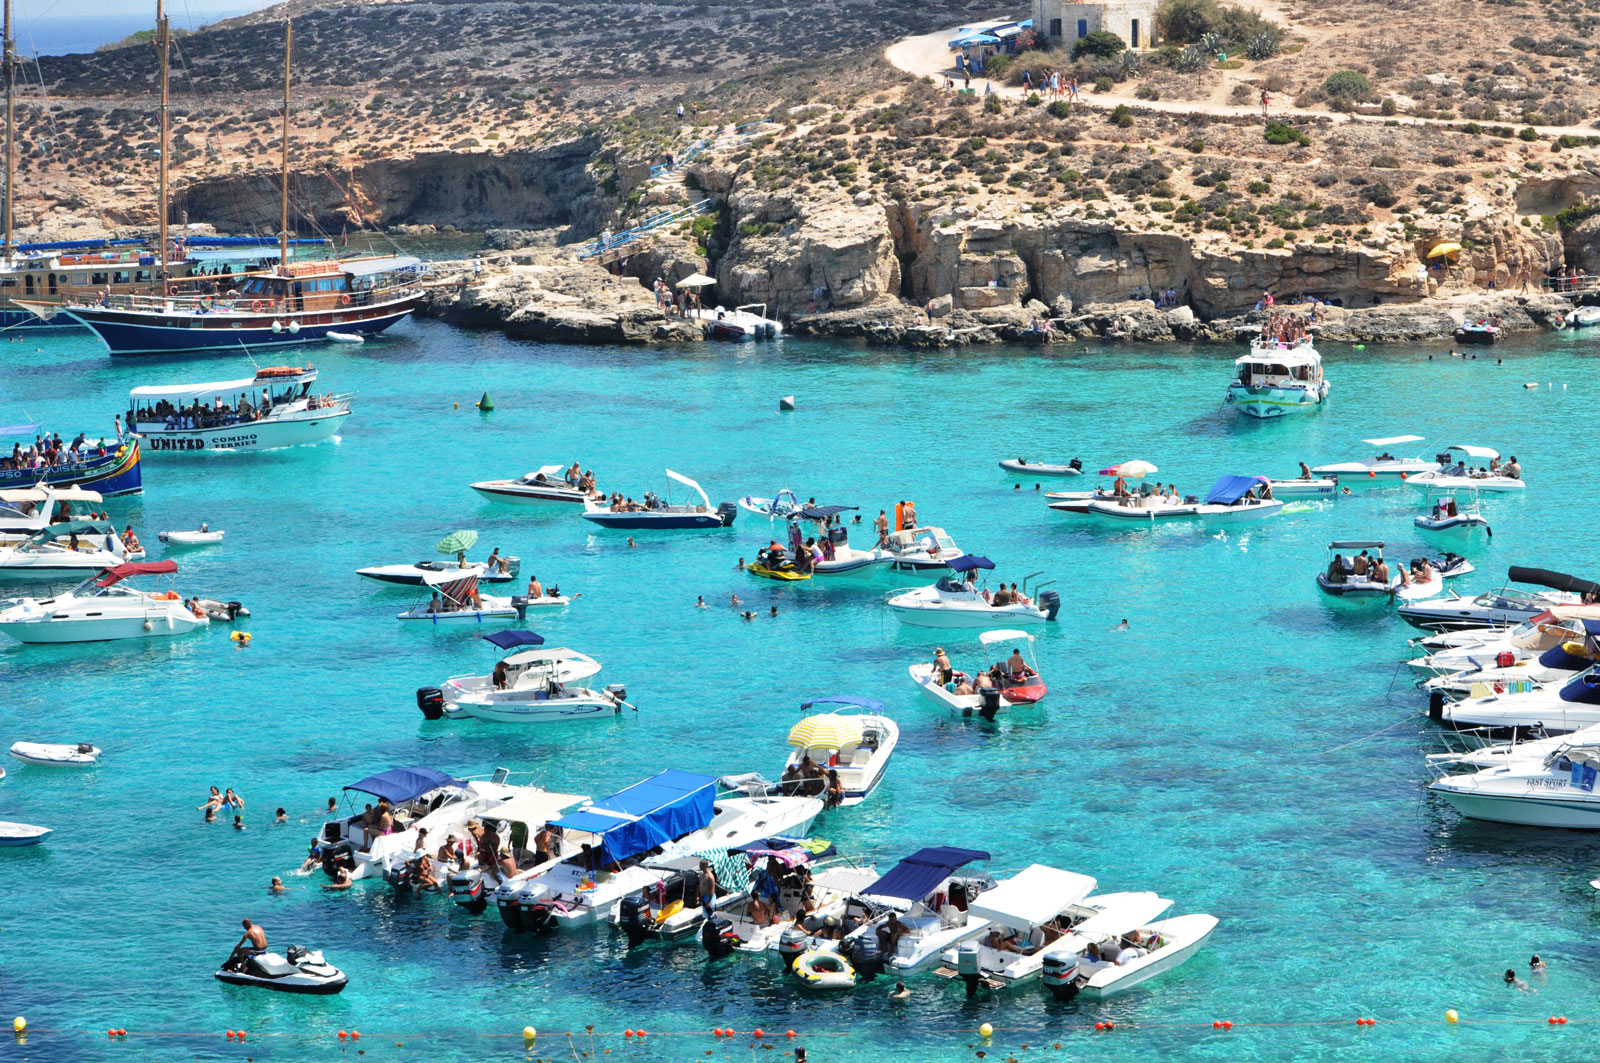 Boats Moored in the Blue Lagoon